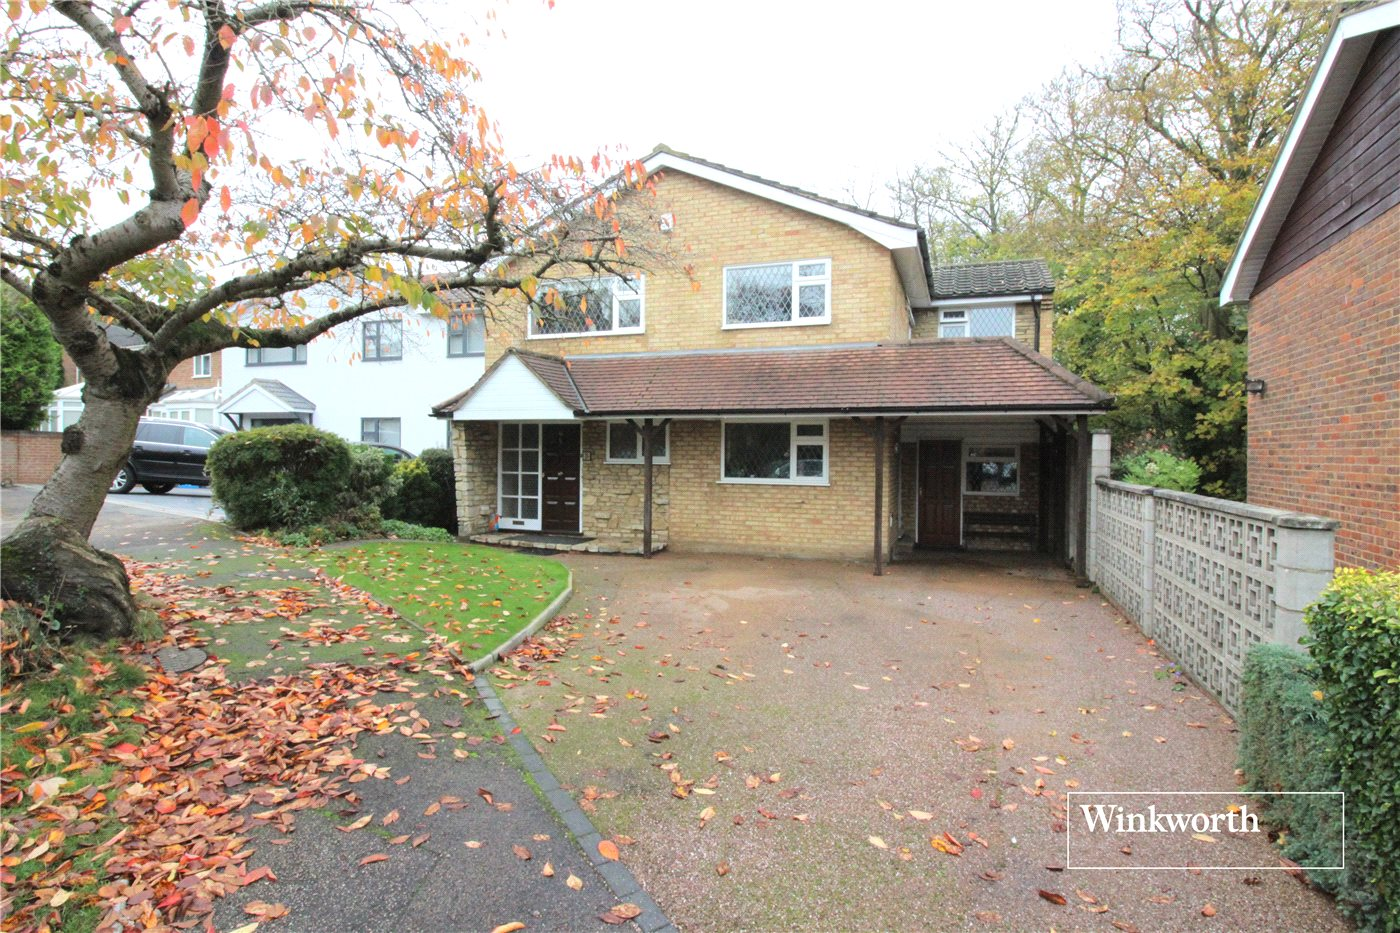 4 Bedrooms Detached House for sale in Woodside, Elstree, Hertfordshire, WD6